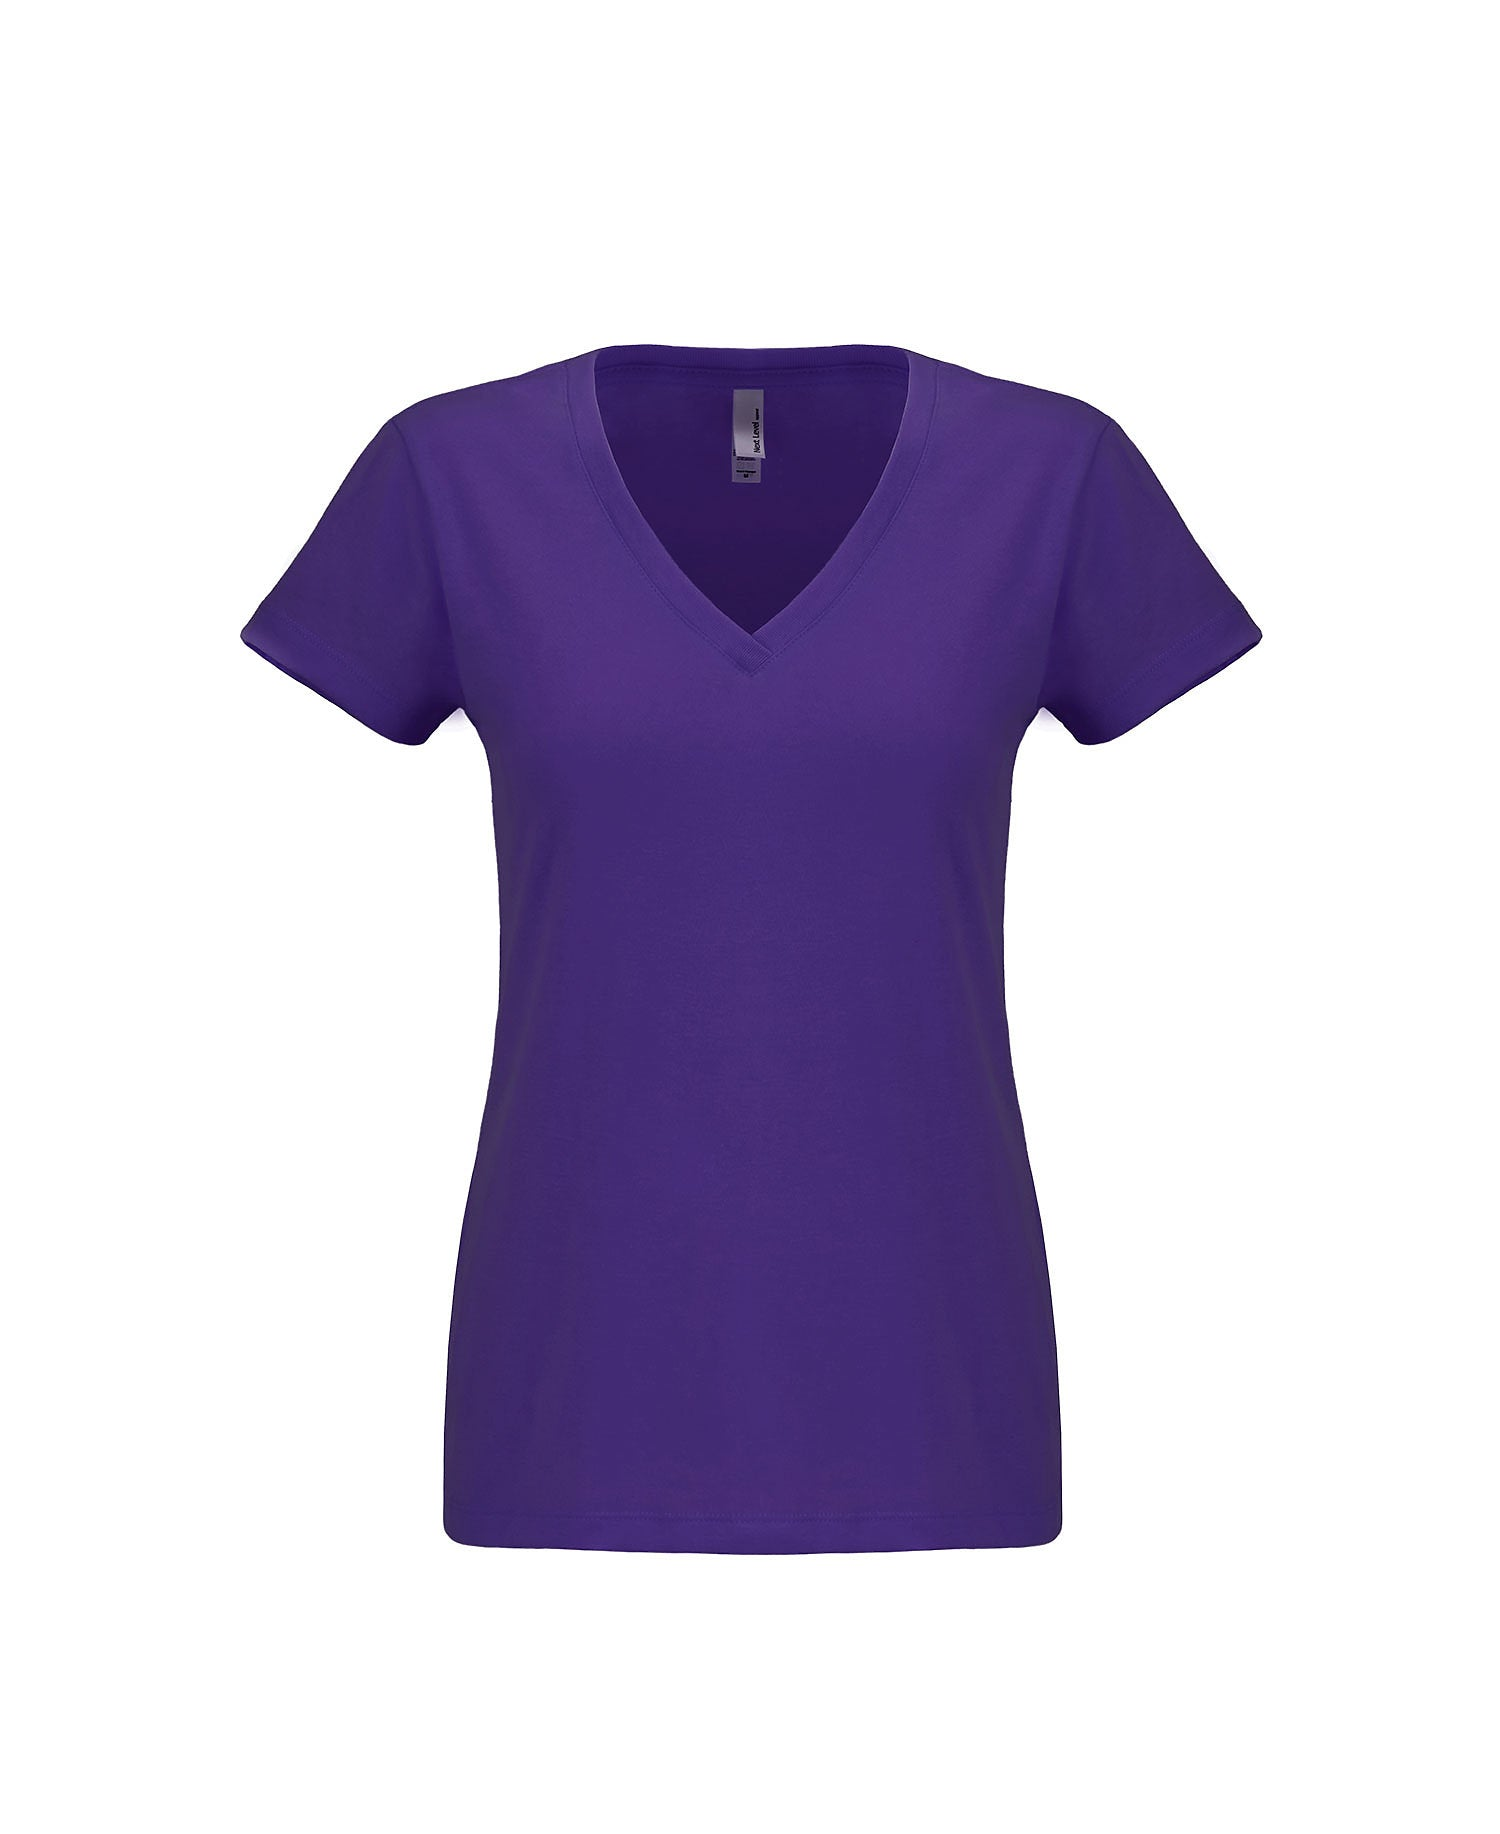 Next-Level-Women-039-s-Sueded-V-Neck-Tee-NL6480 thumbnail 17